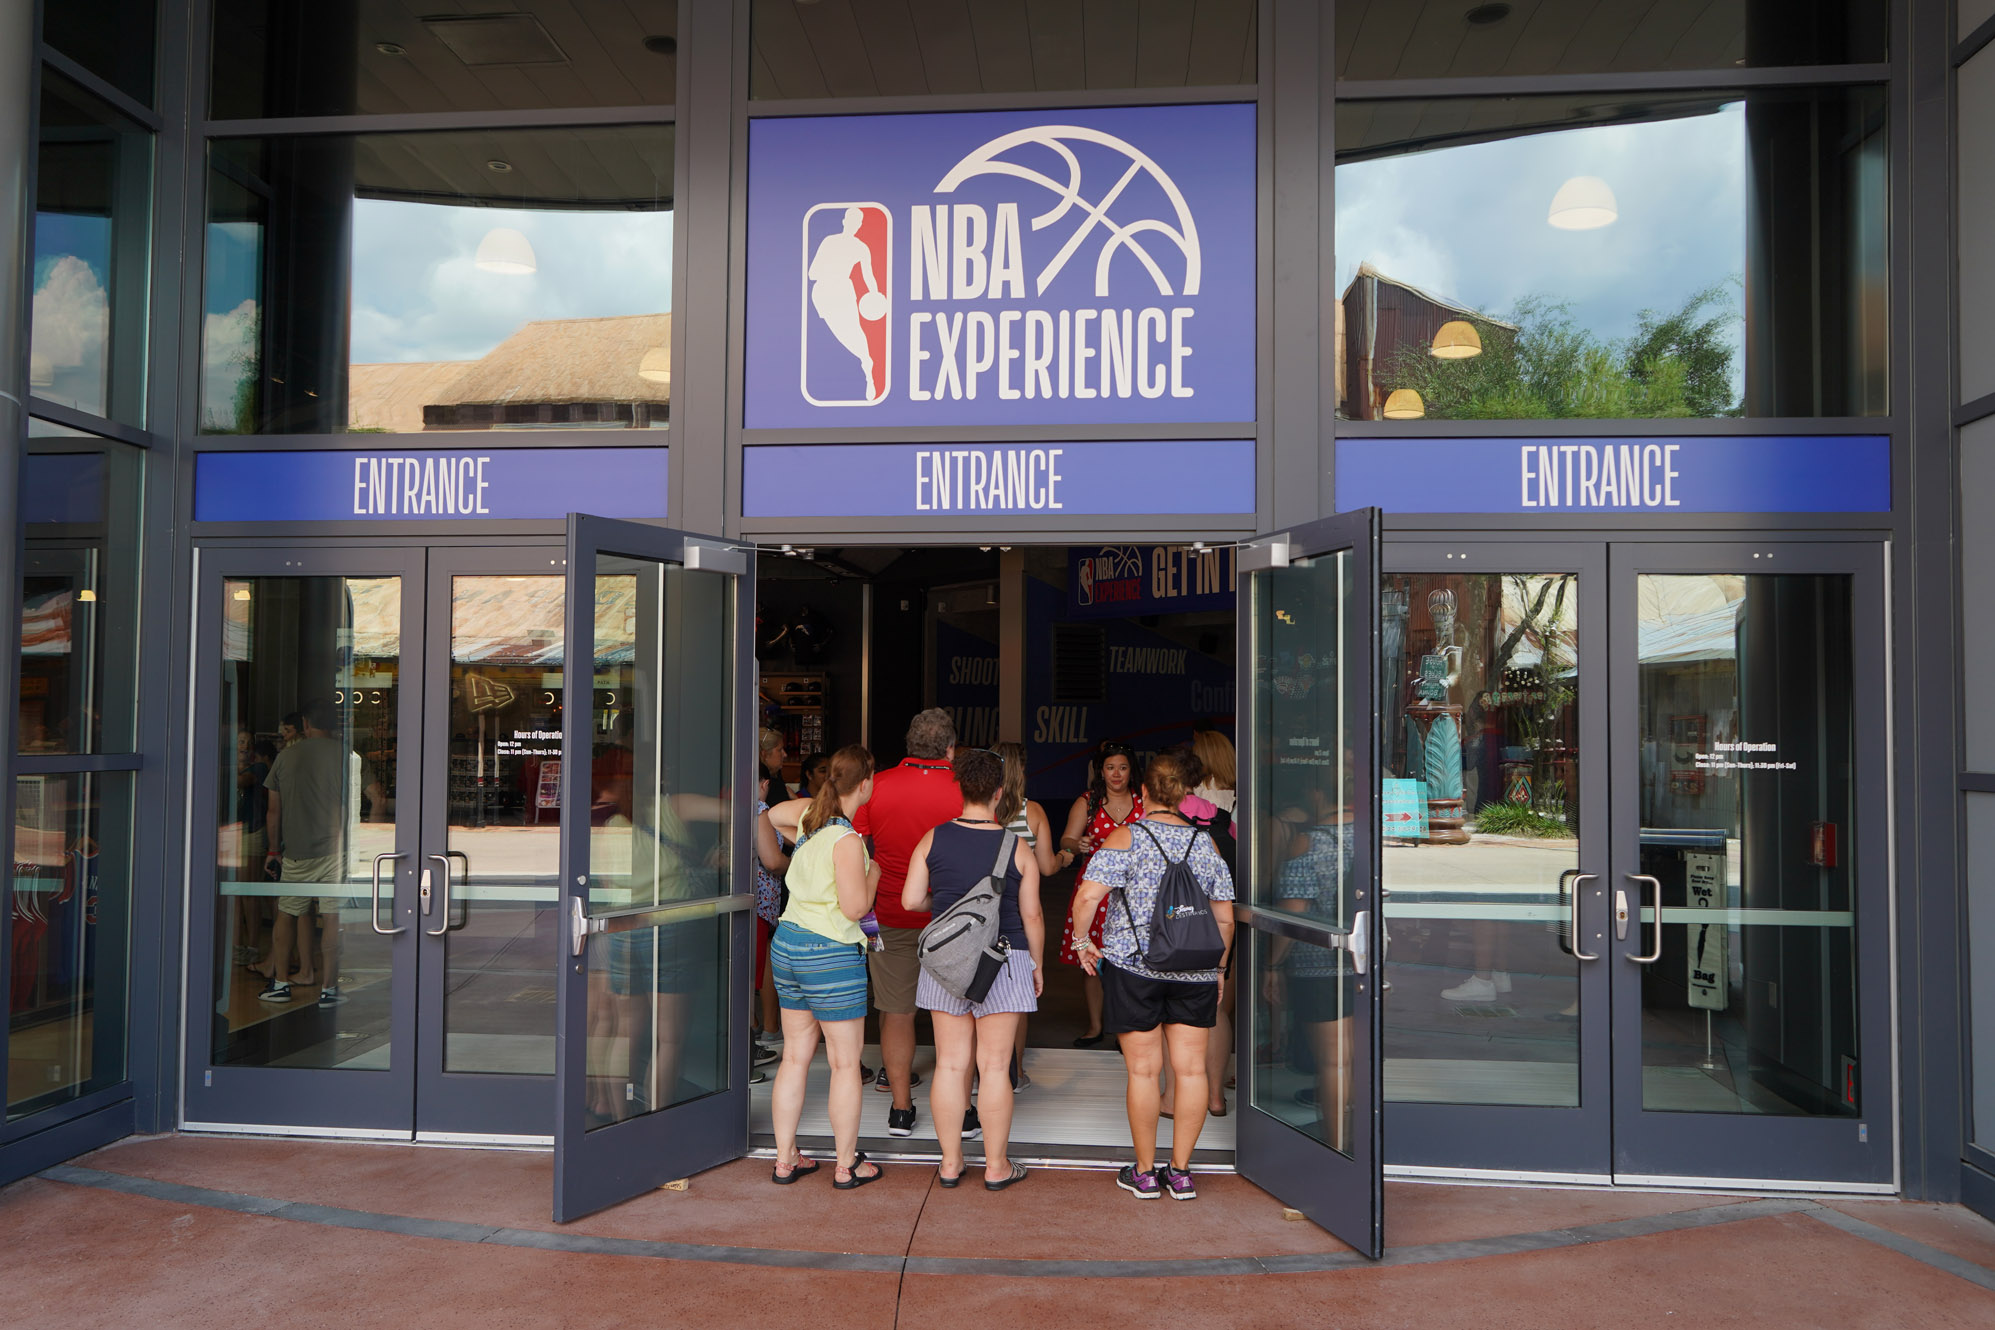 NBA Experience at Disney World